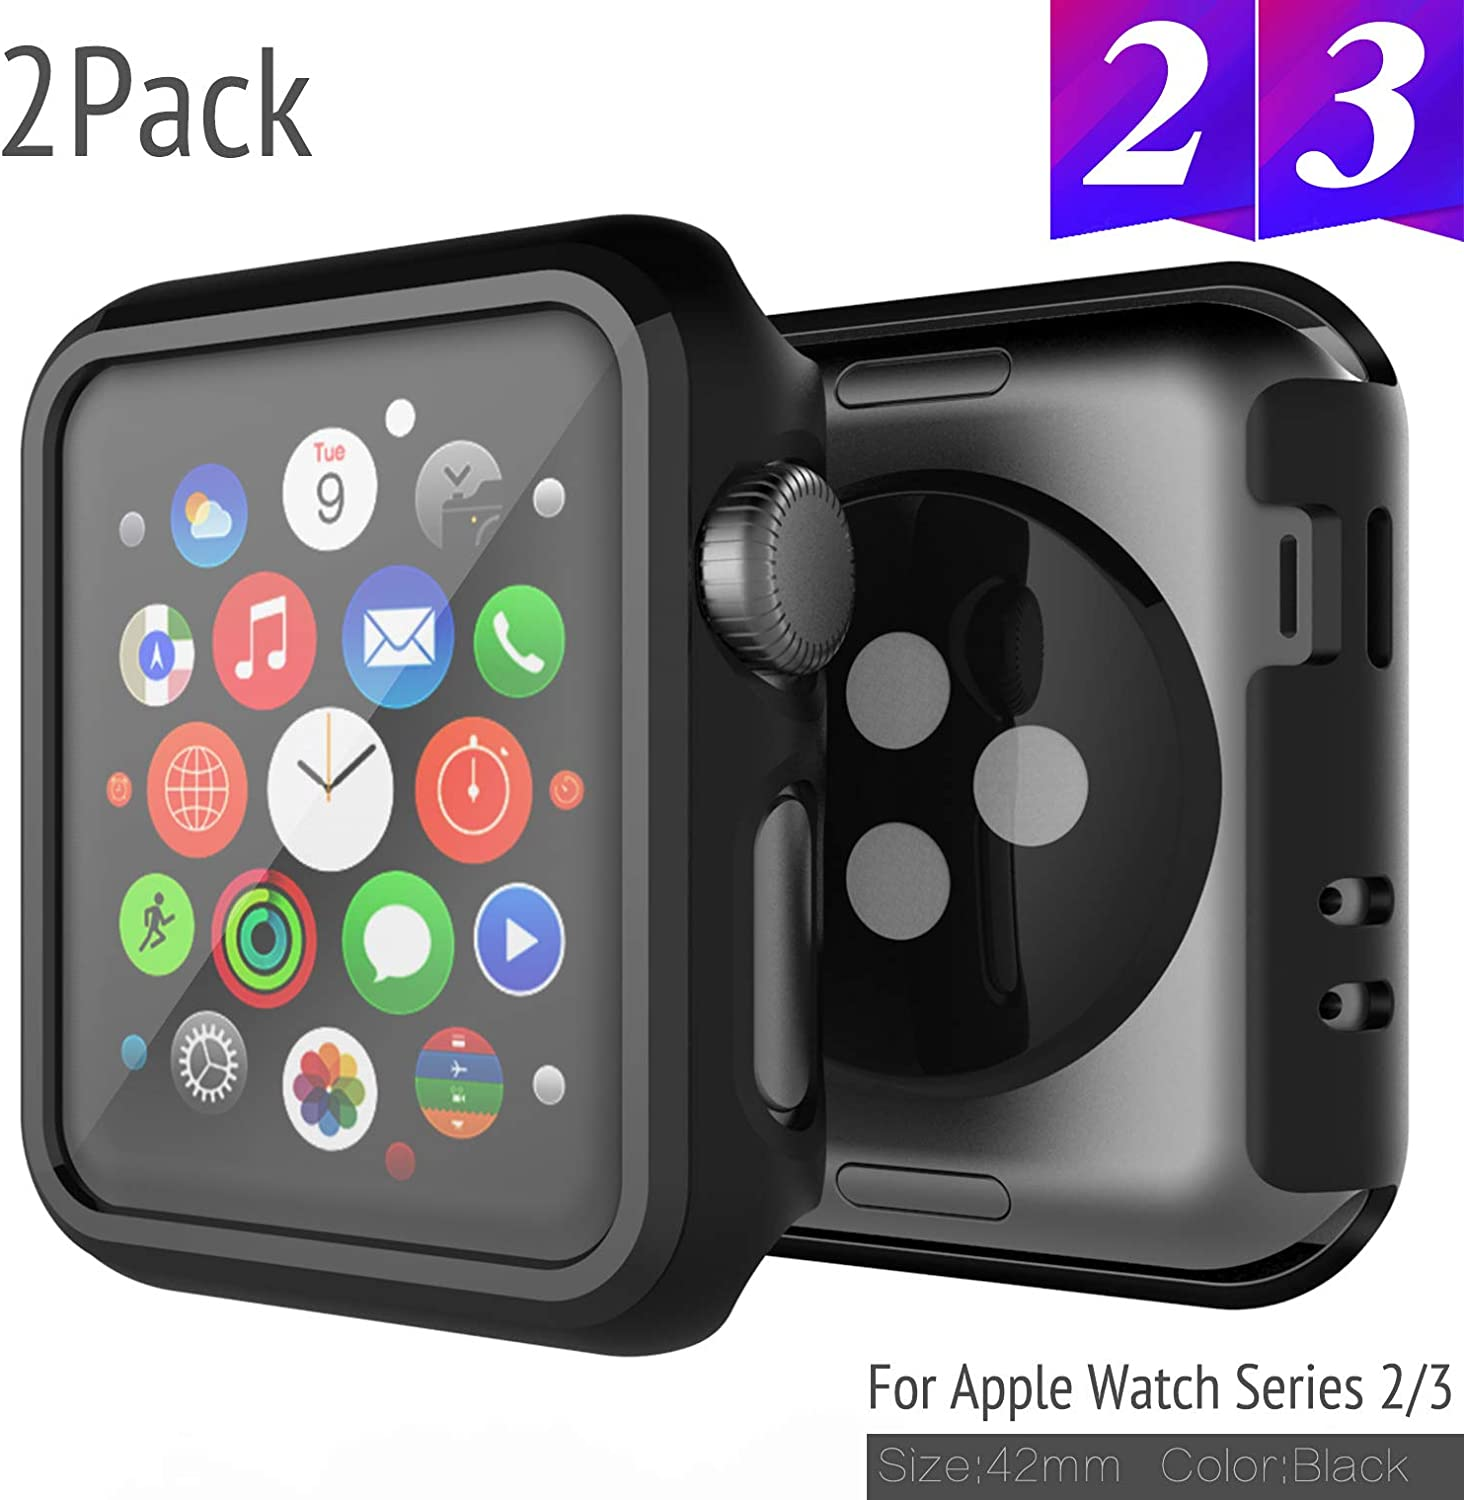 2 Pack Bumper for Apple Watch Case 42mm Series 3 Series 2 Anti-Scratch Shockproof Ultra-Thin Hard iWatch Protector for Apple Watch Cover 42mm Series 3/2